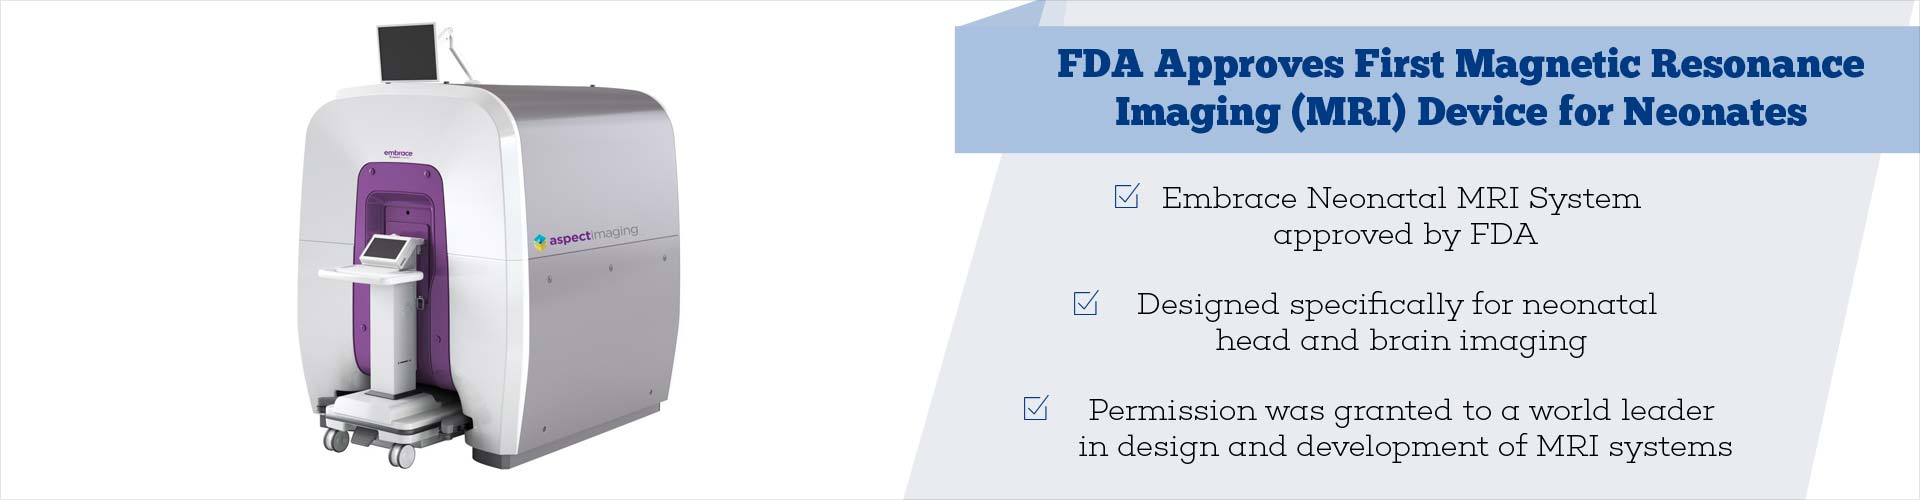 FDA Approves First Magnetic Resonance Imaging (MRI) Device for Neonates